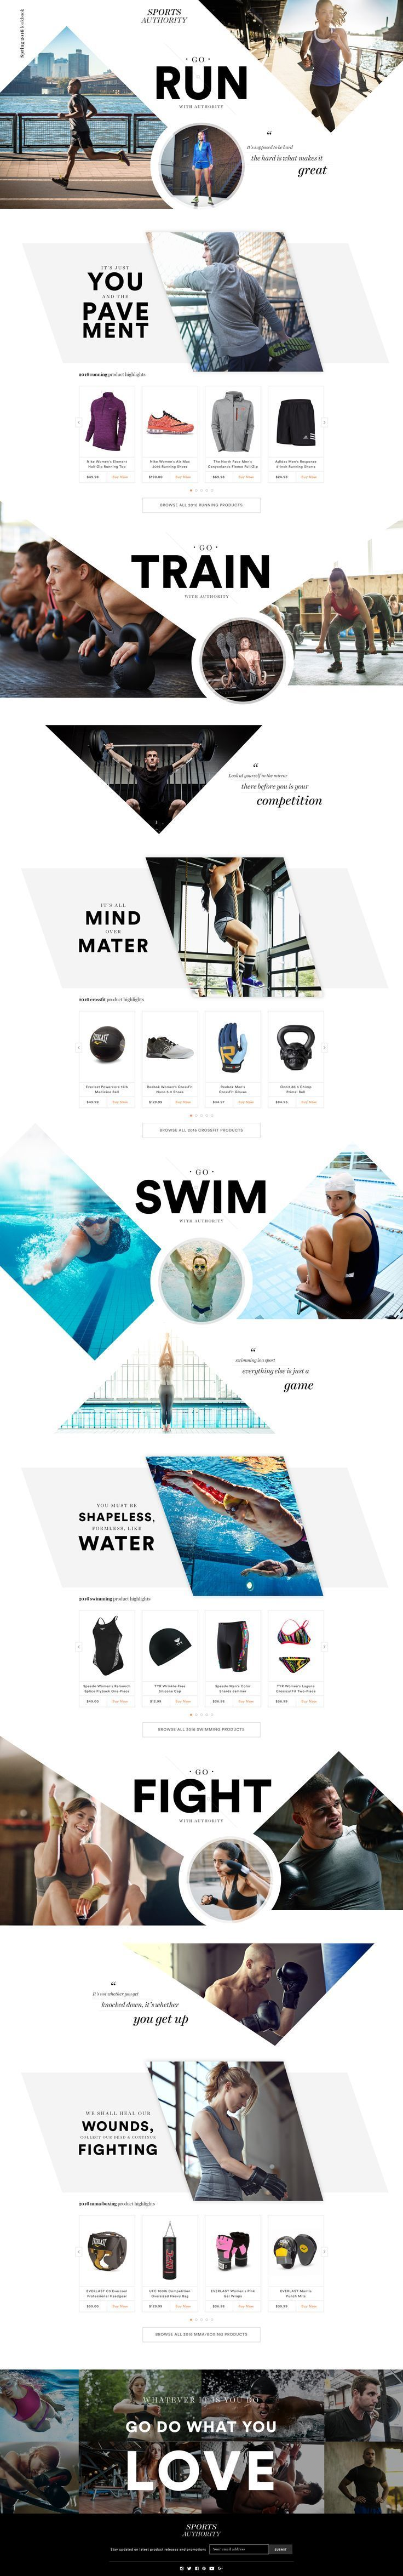 Web design   Sports authority lookbook2016 jason kirtley 1x   creative   inspiration   web. If you're a user experience professional, listen to The UX Blog Podcast on iTunes.